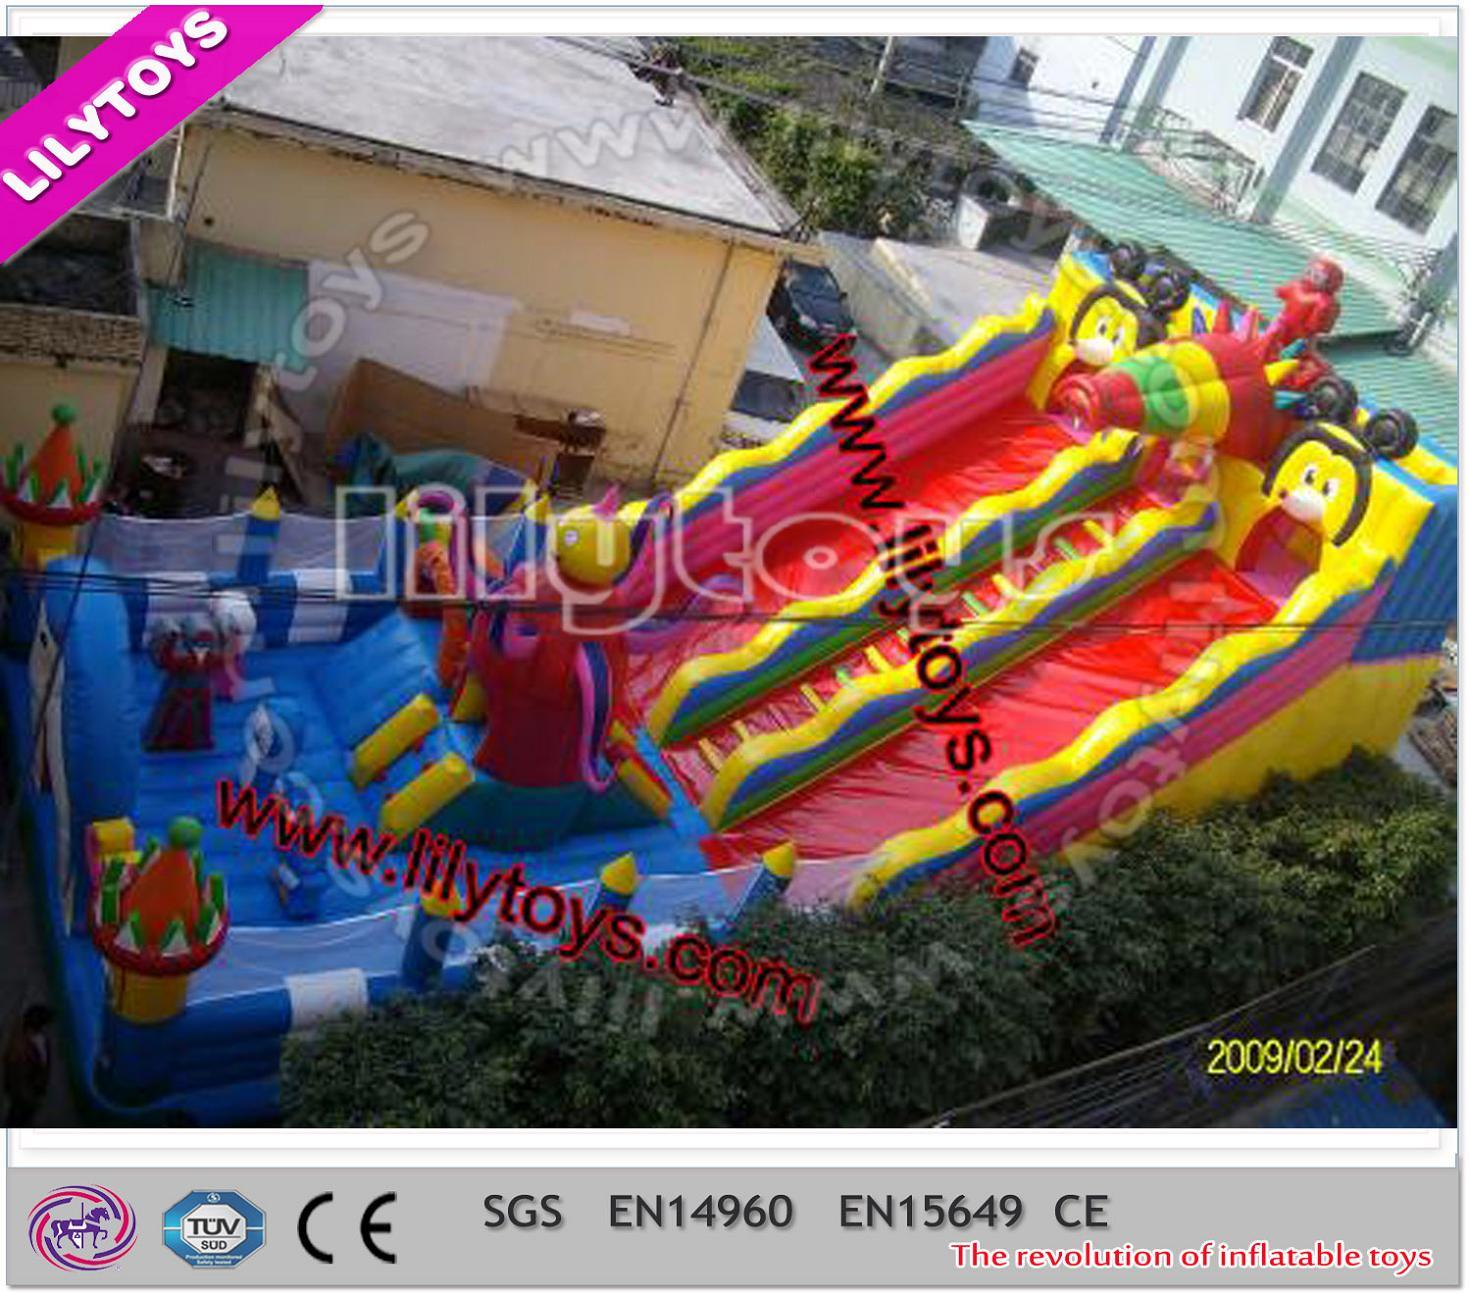 Exciting Red Color Inflatable Toy Products for Sale (Lilytoys-New-028)